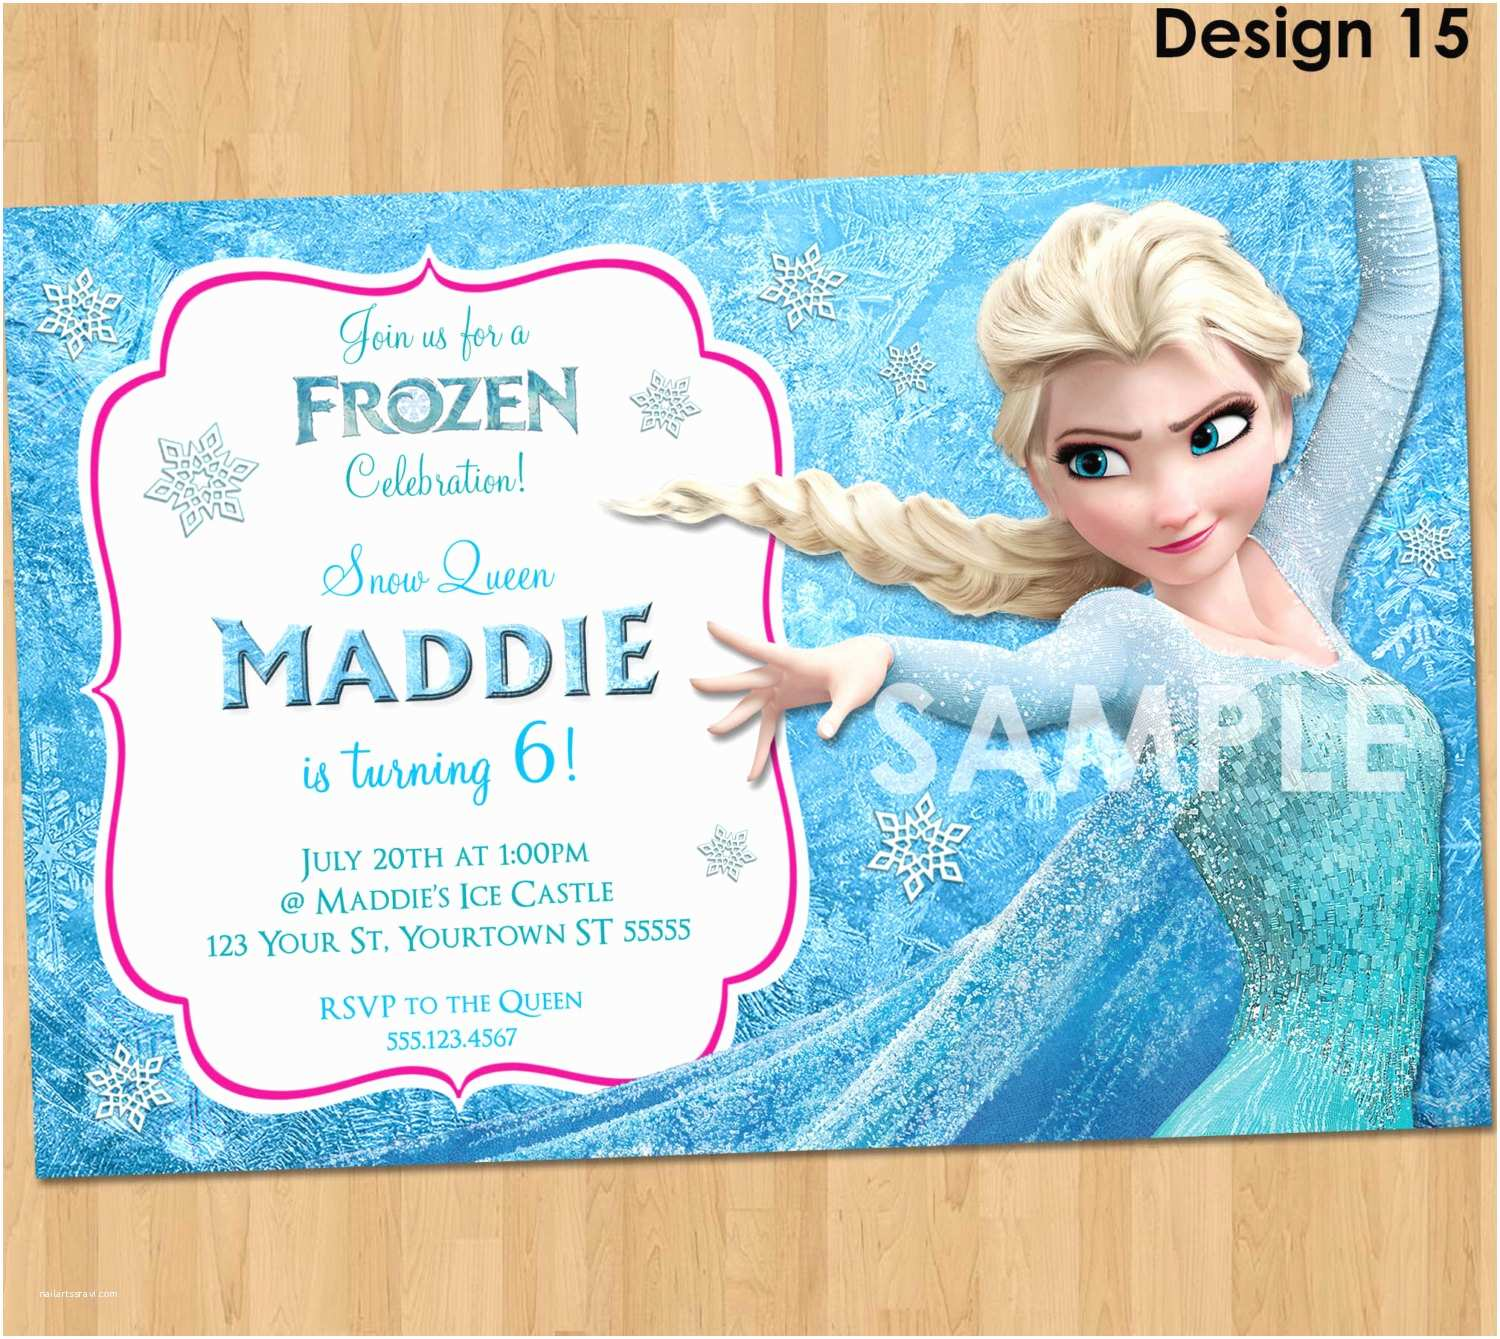 photograph about Frozen Birthday Card Printable referred to as Elsa Birthday Invites Frozen Birthday Invitation Elsa